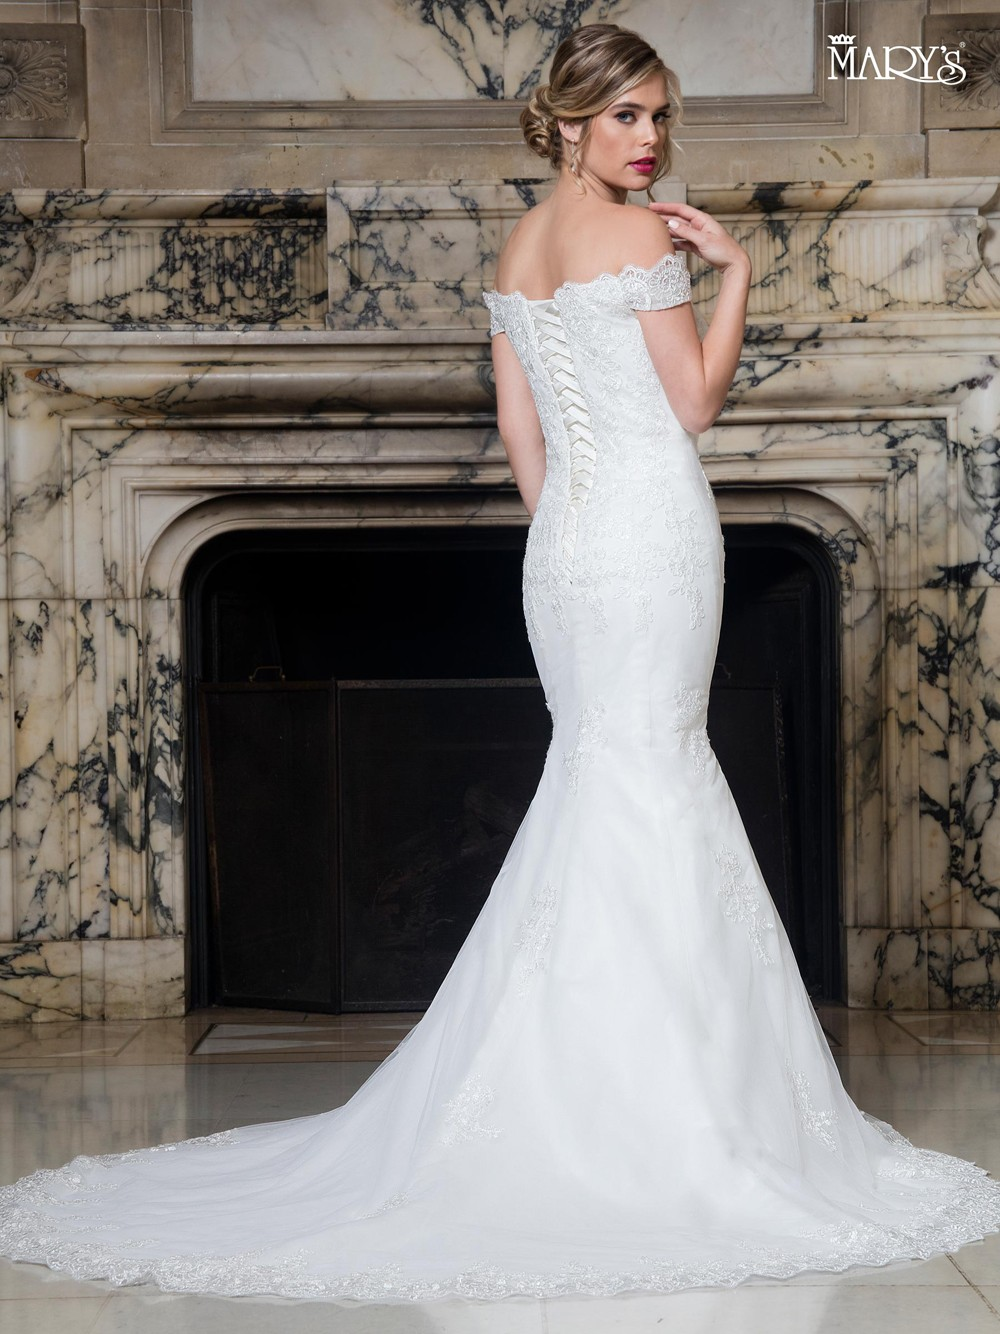 Marys Bridal MB3003 Dress - MadameBridal.com